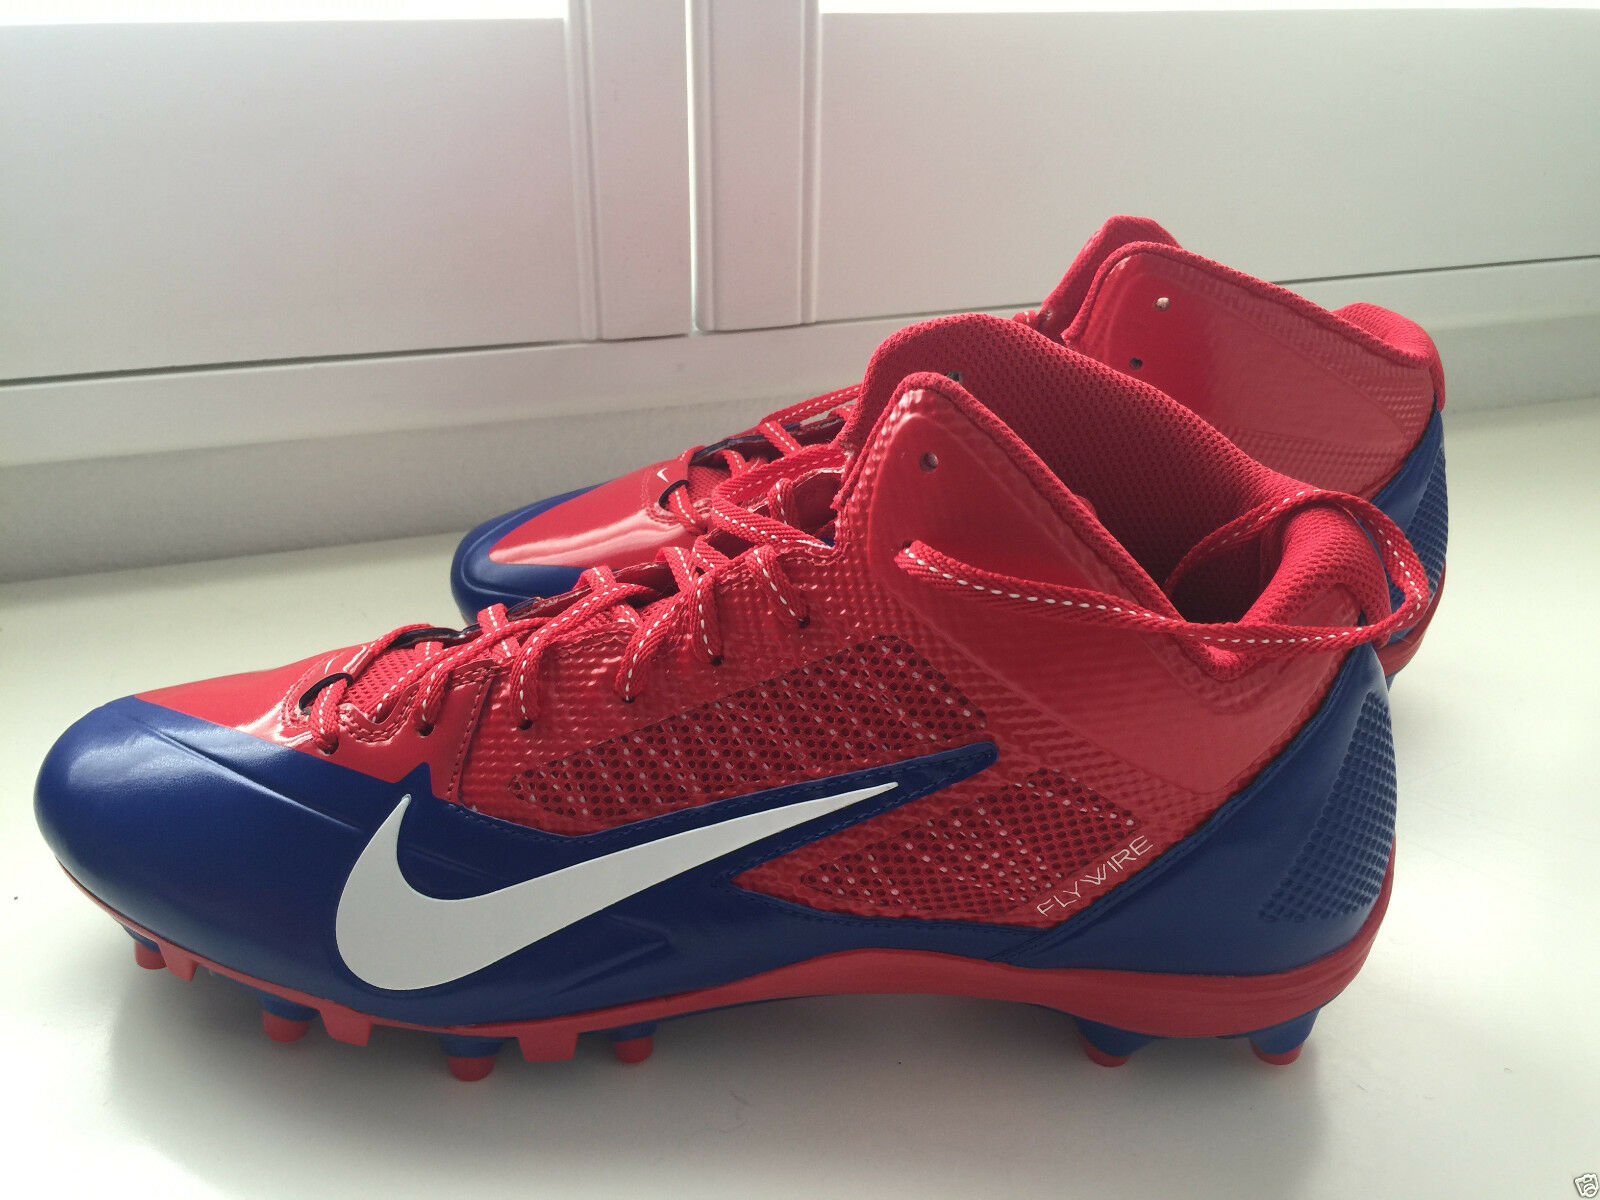 NIKE FLYWIRE RED, WHITE, AND BLUE FOOTBALL CLEATS SIZE 13.5